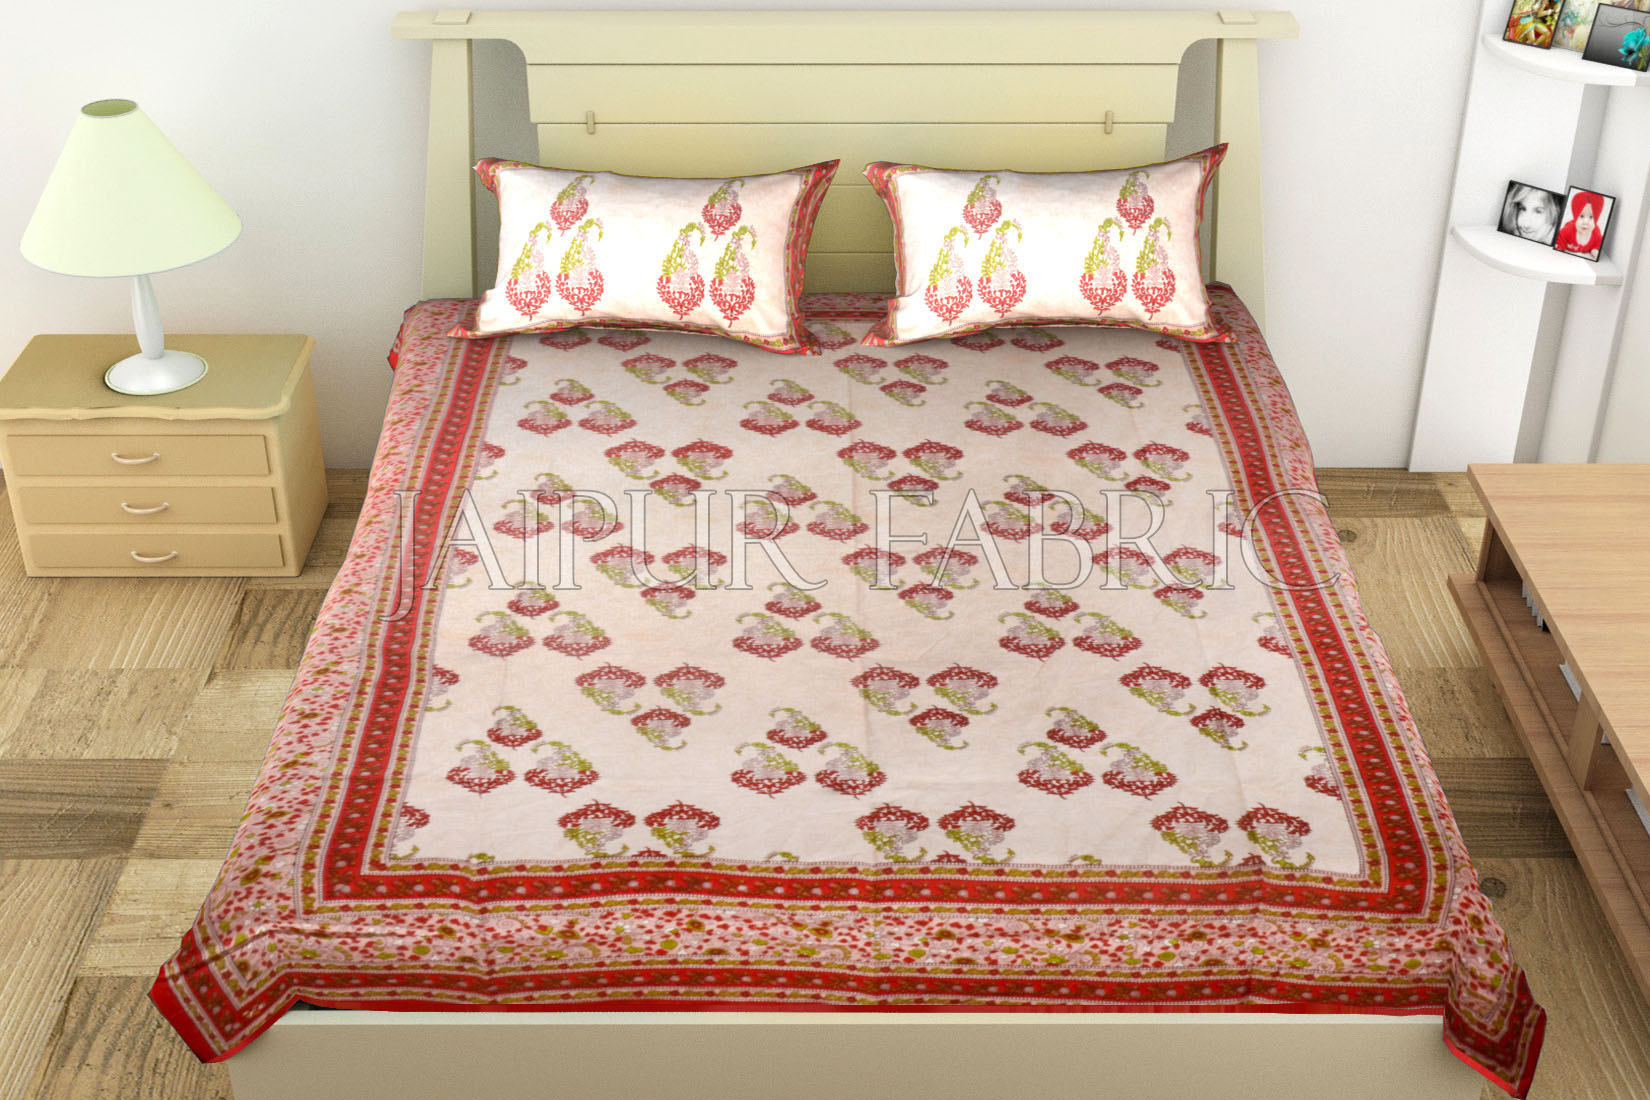 Most Low Cost Bed Sheets To Maintain A Standard Quality Various Tests Are Performed Check Whether The Product Is Good Or Not Sometimes Products